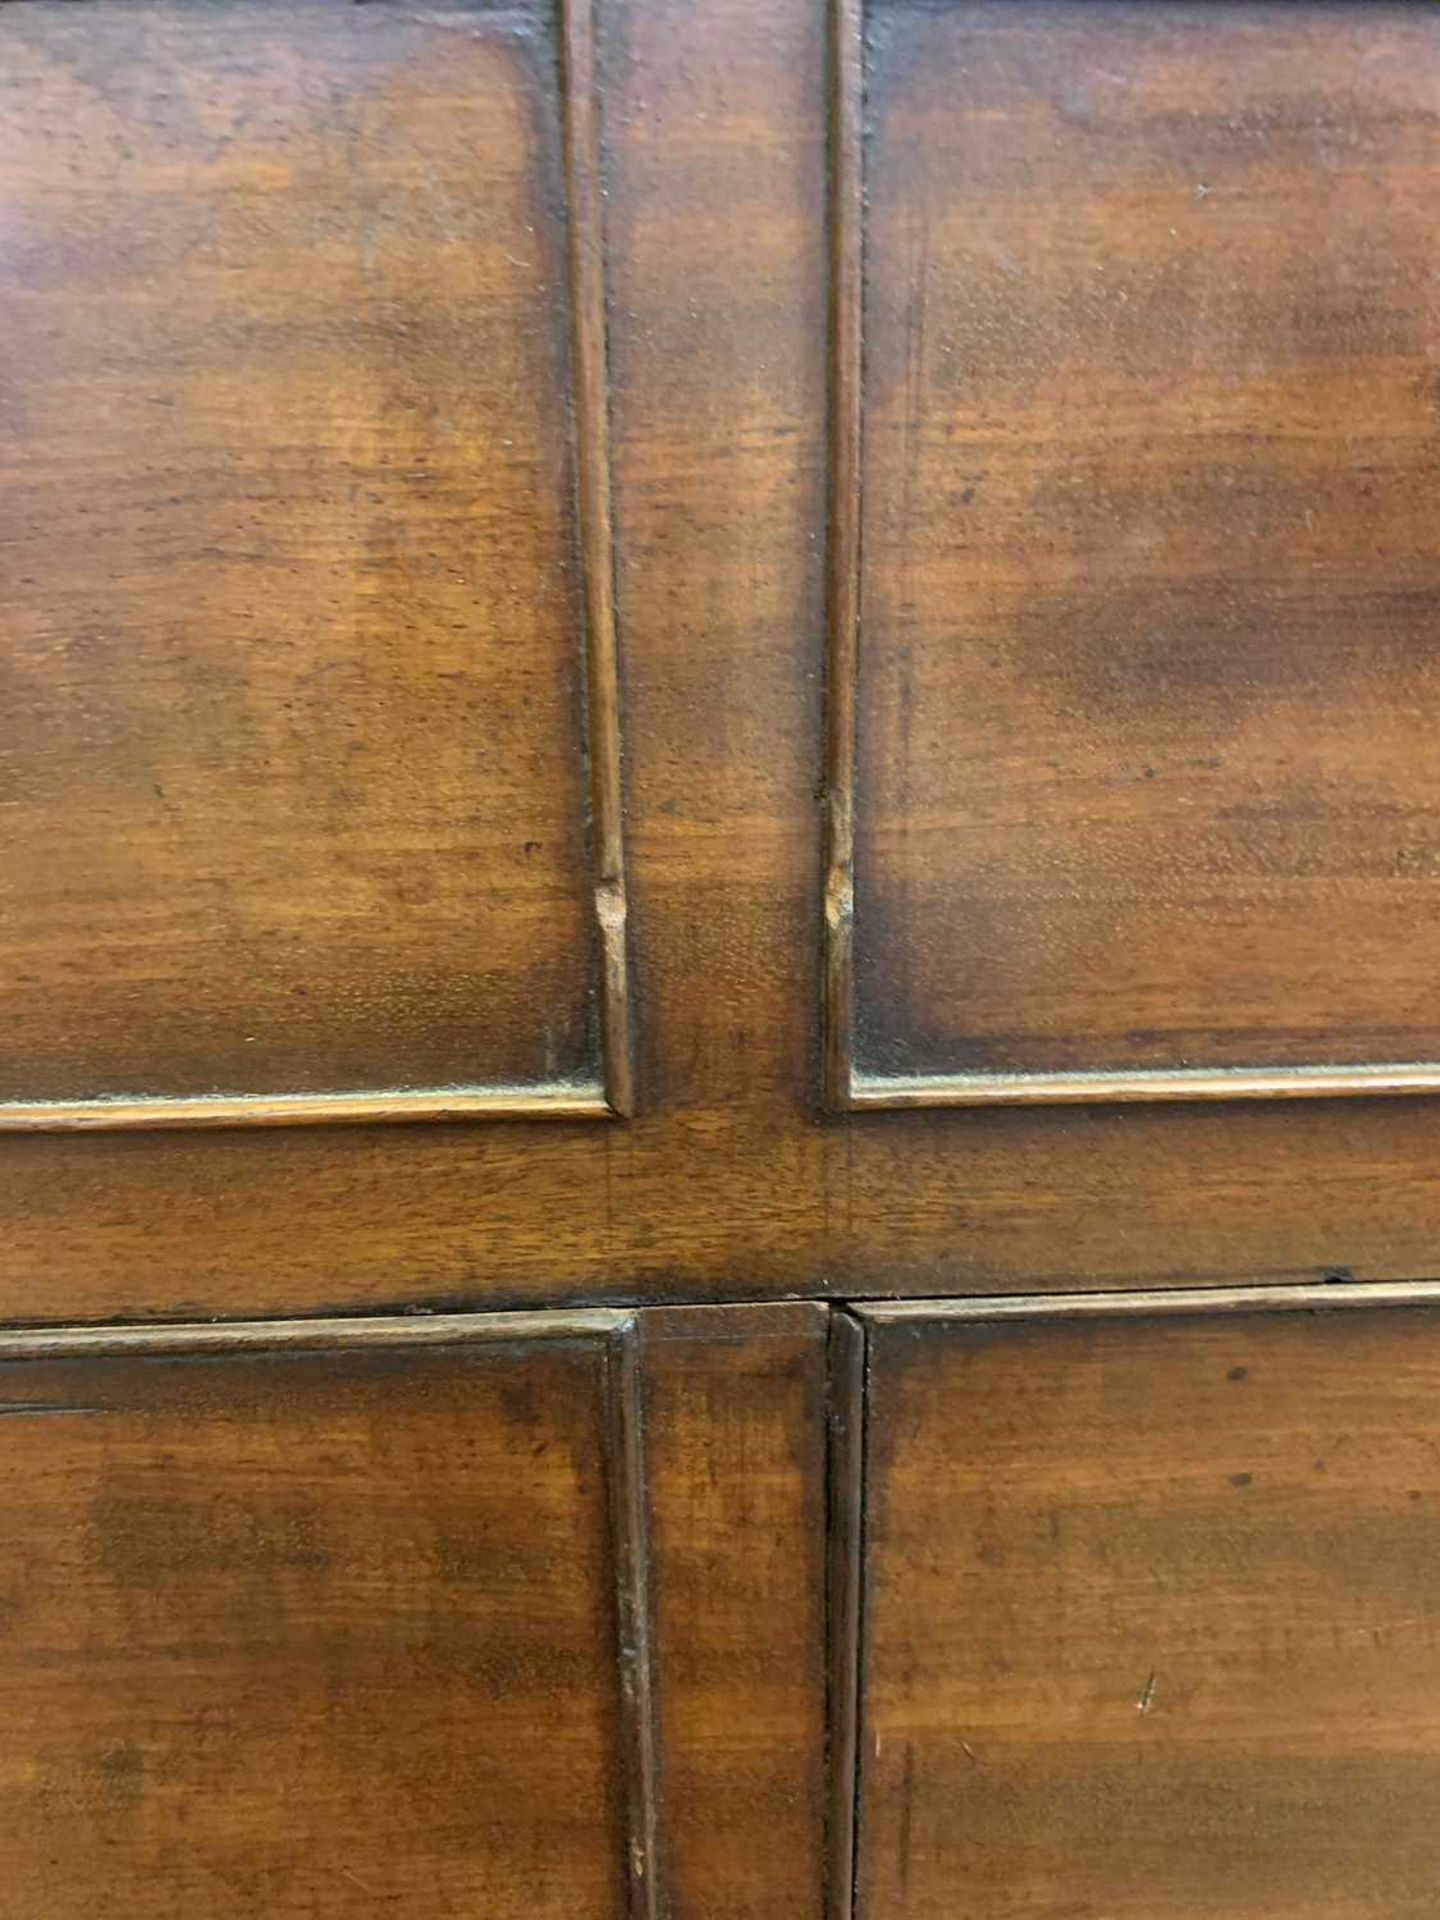 A George III mahogany architect's desk/secretaire, - Image 21 of 30